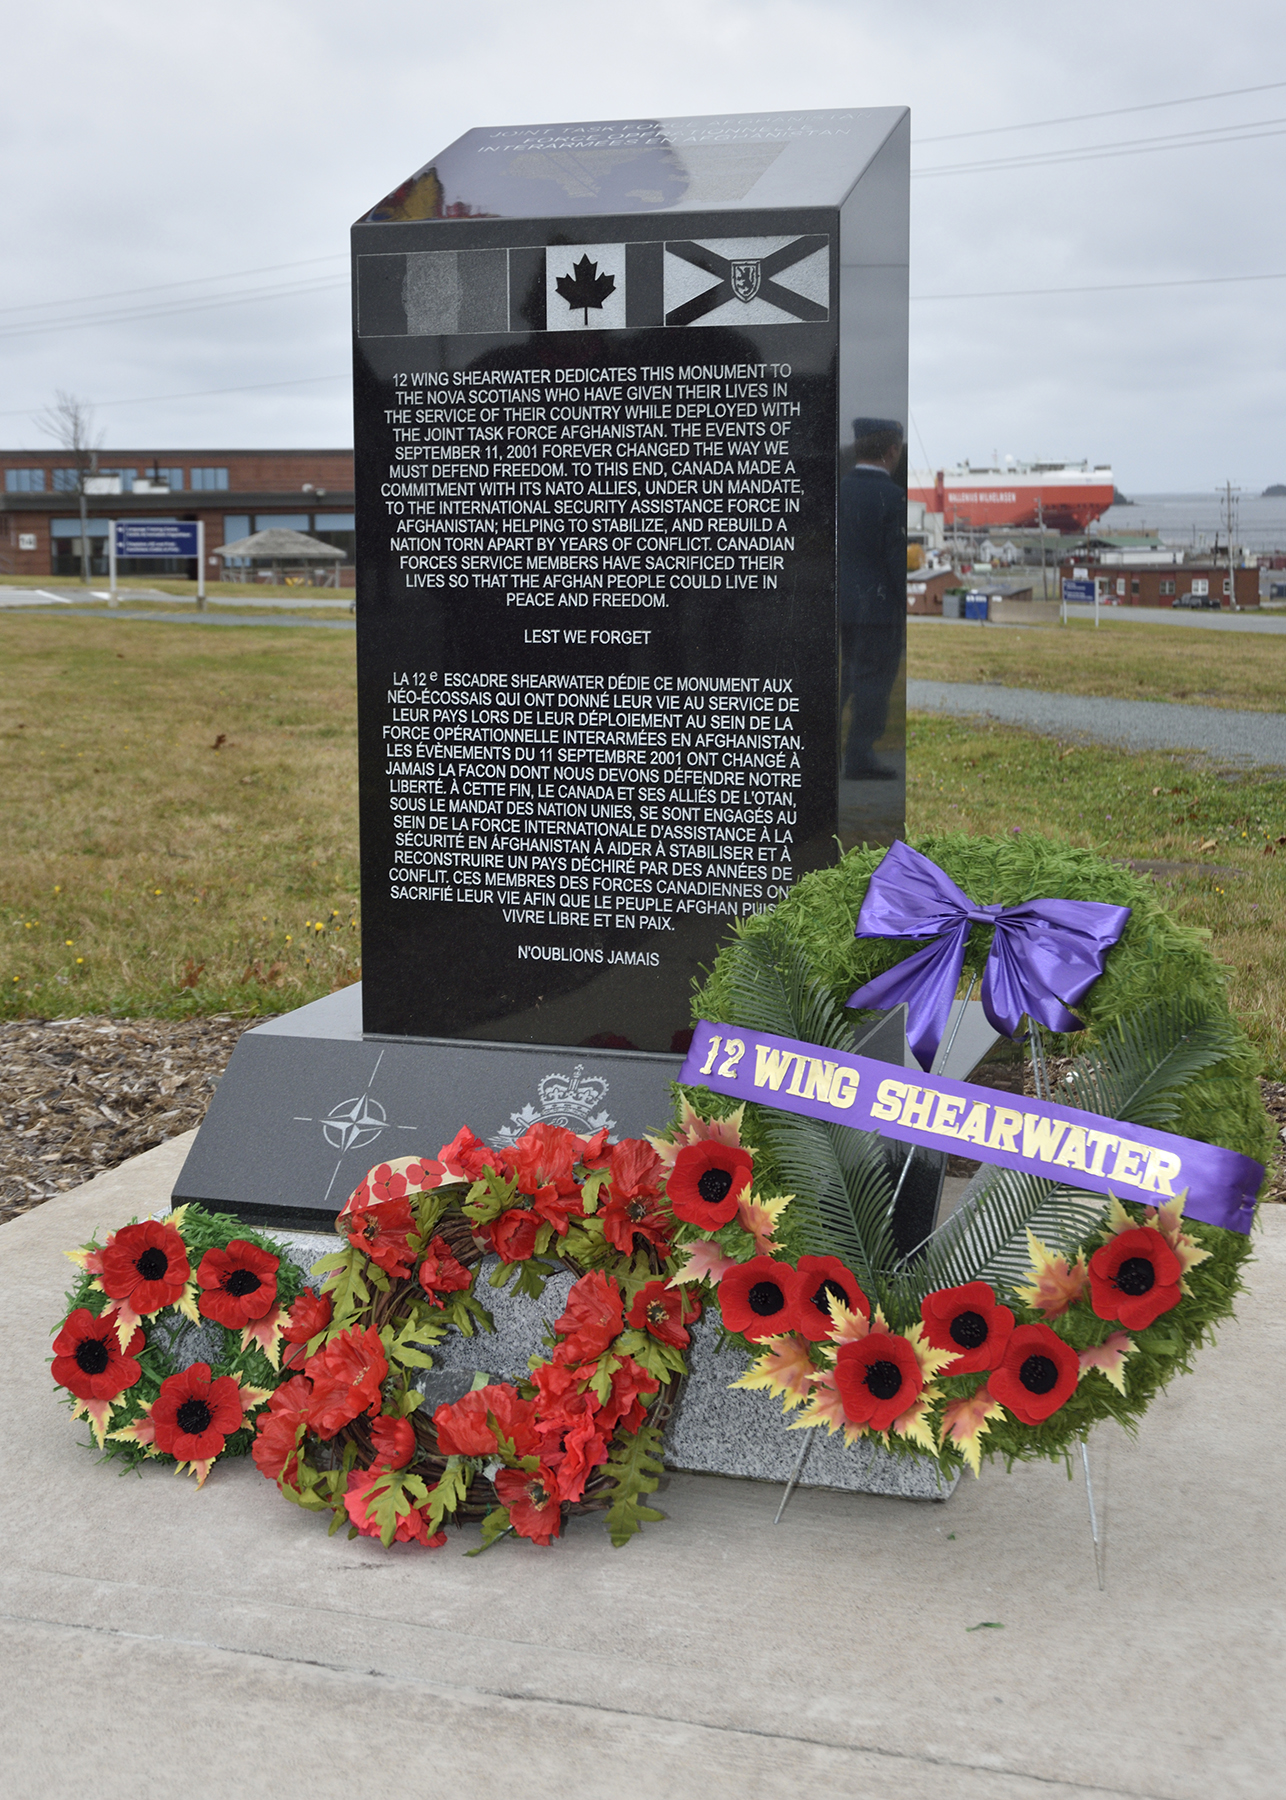 The 12 Wing Shearwater, Nova Scotia, Afghanistan Memorial is dedicated to the 16 Nova Scotians who died in Afghanistan. PHOTO: Corporal Jennifer Chiasson